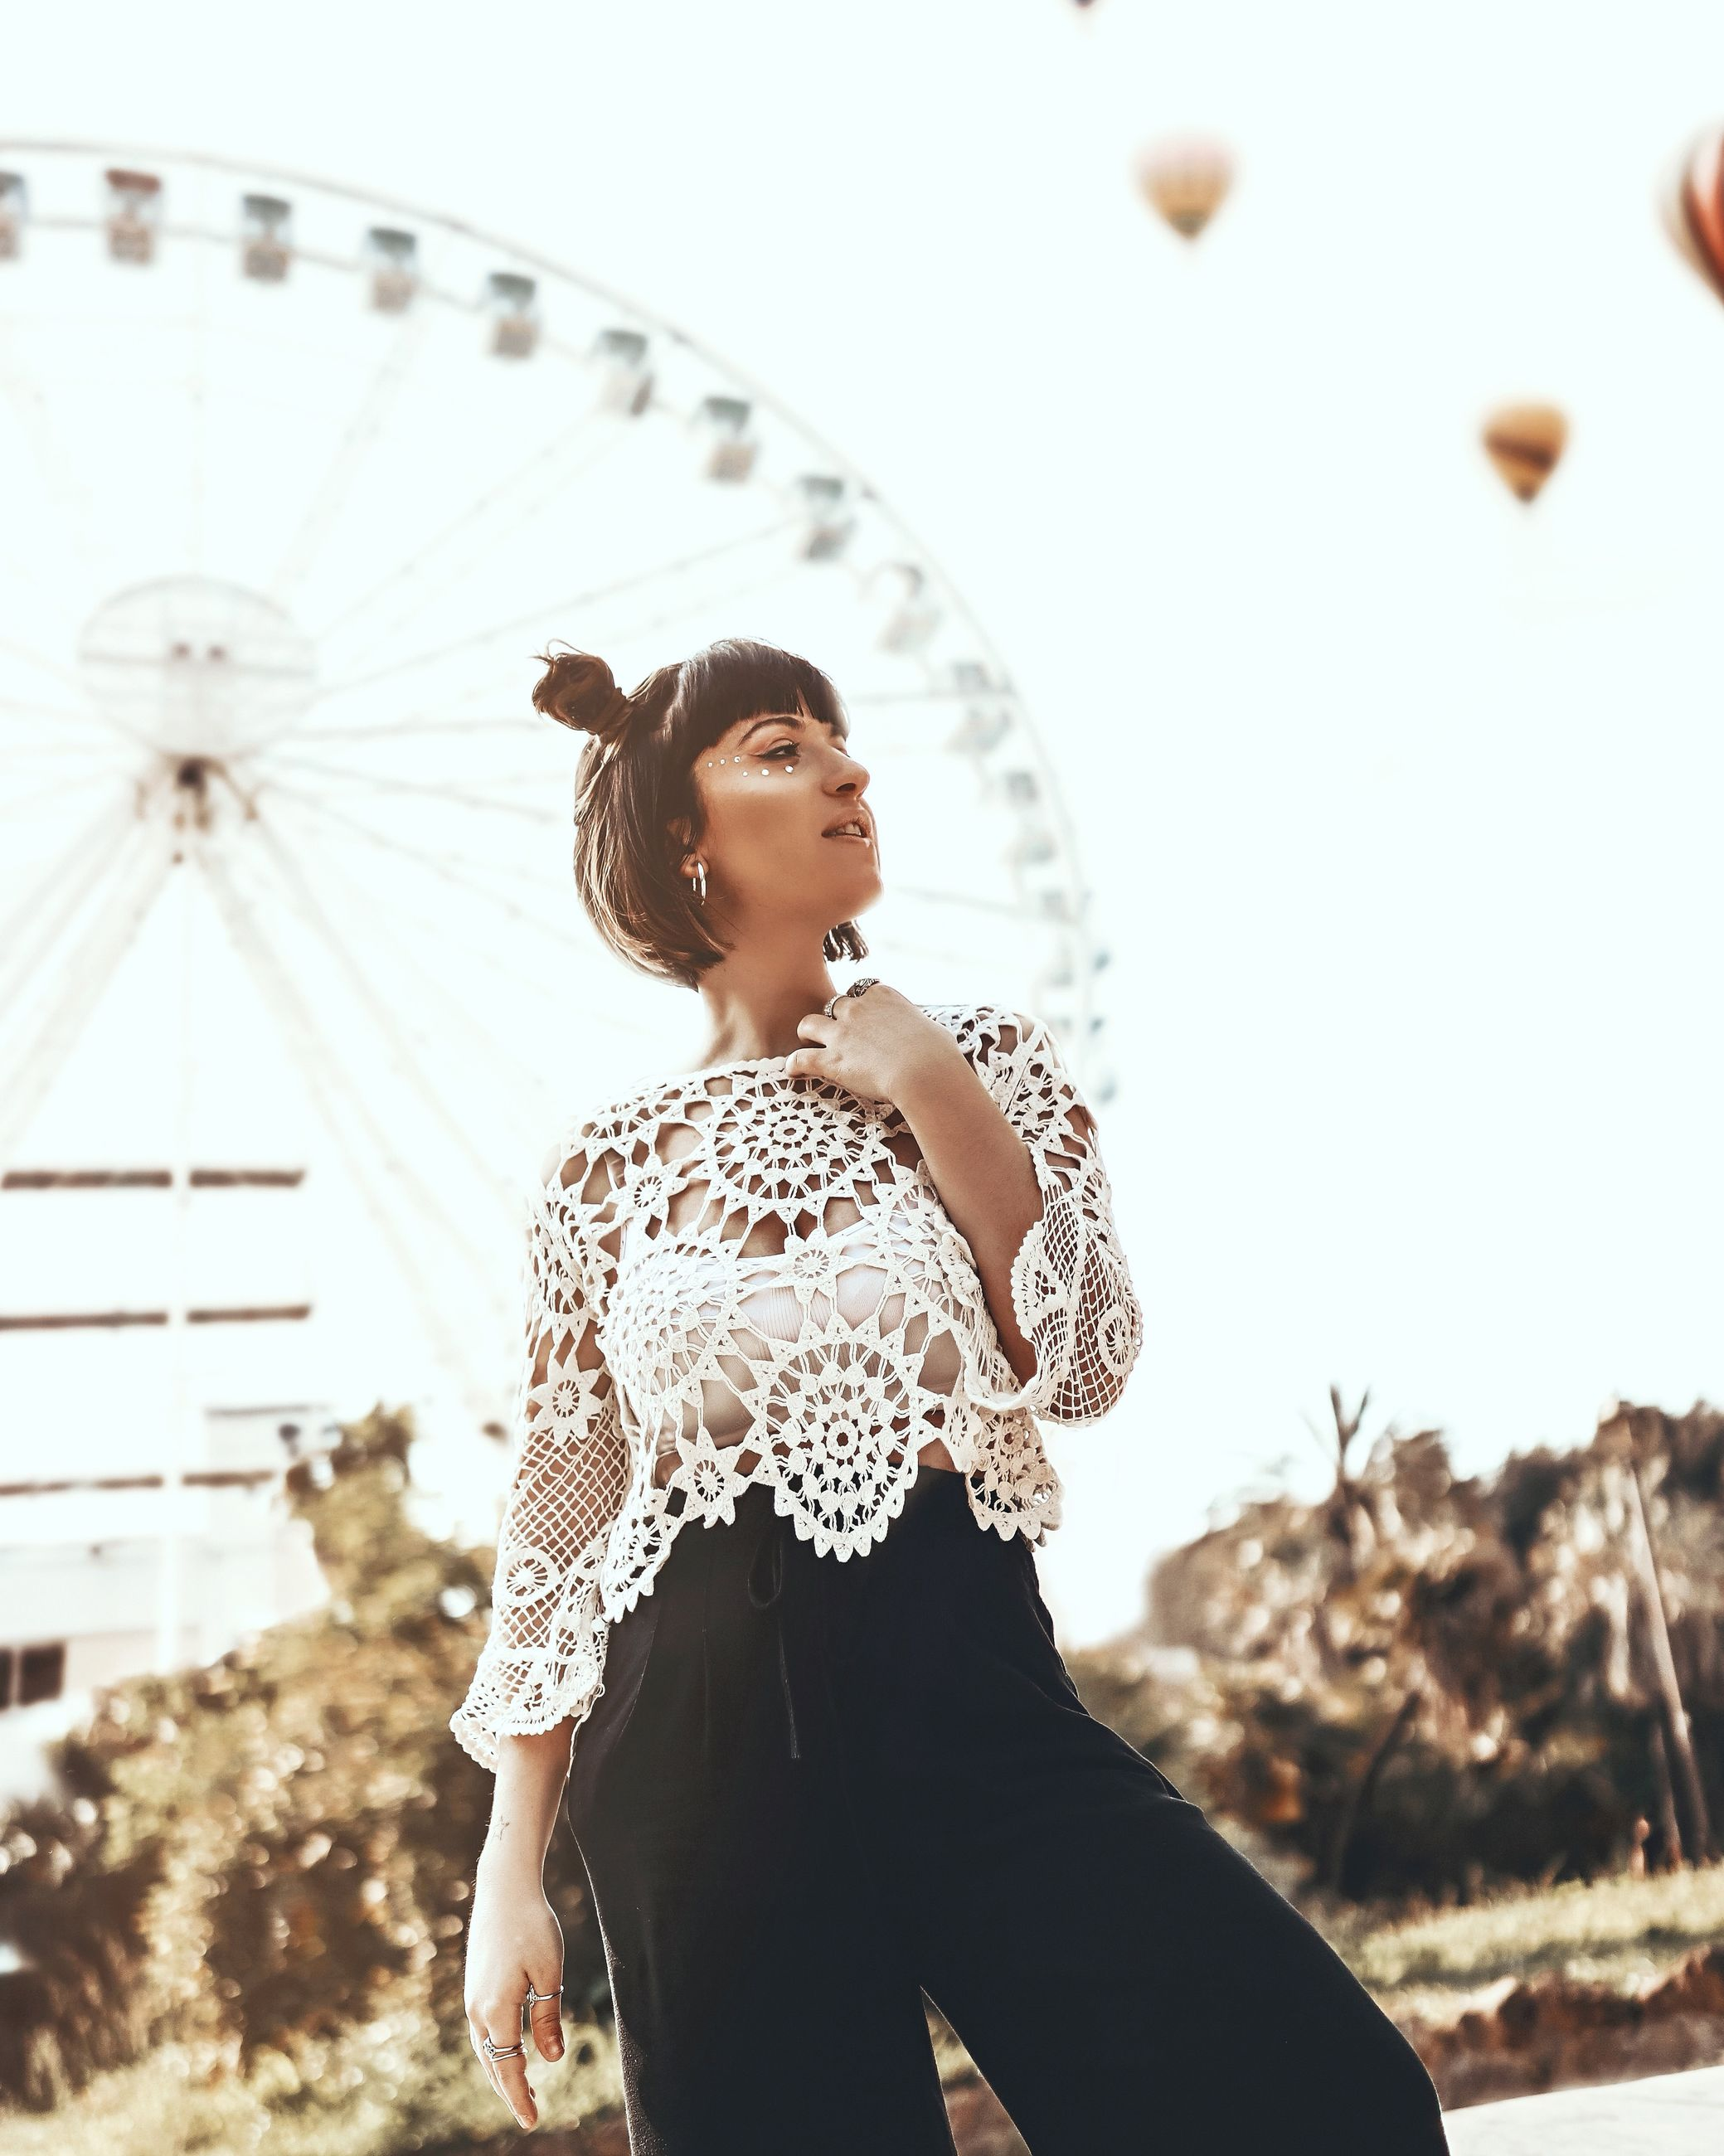 leisure activity, real people, amusement park ride, focus on foreground, one person, young adult, three quarter length, lifestyles, amusement park, ferris wheel, casual clothing, young women, front view, looking, nature, sky, women, standing, outdoors, beautiful woman, hairstyle